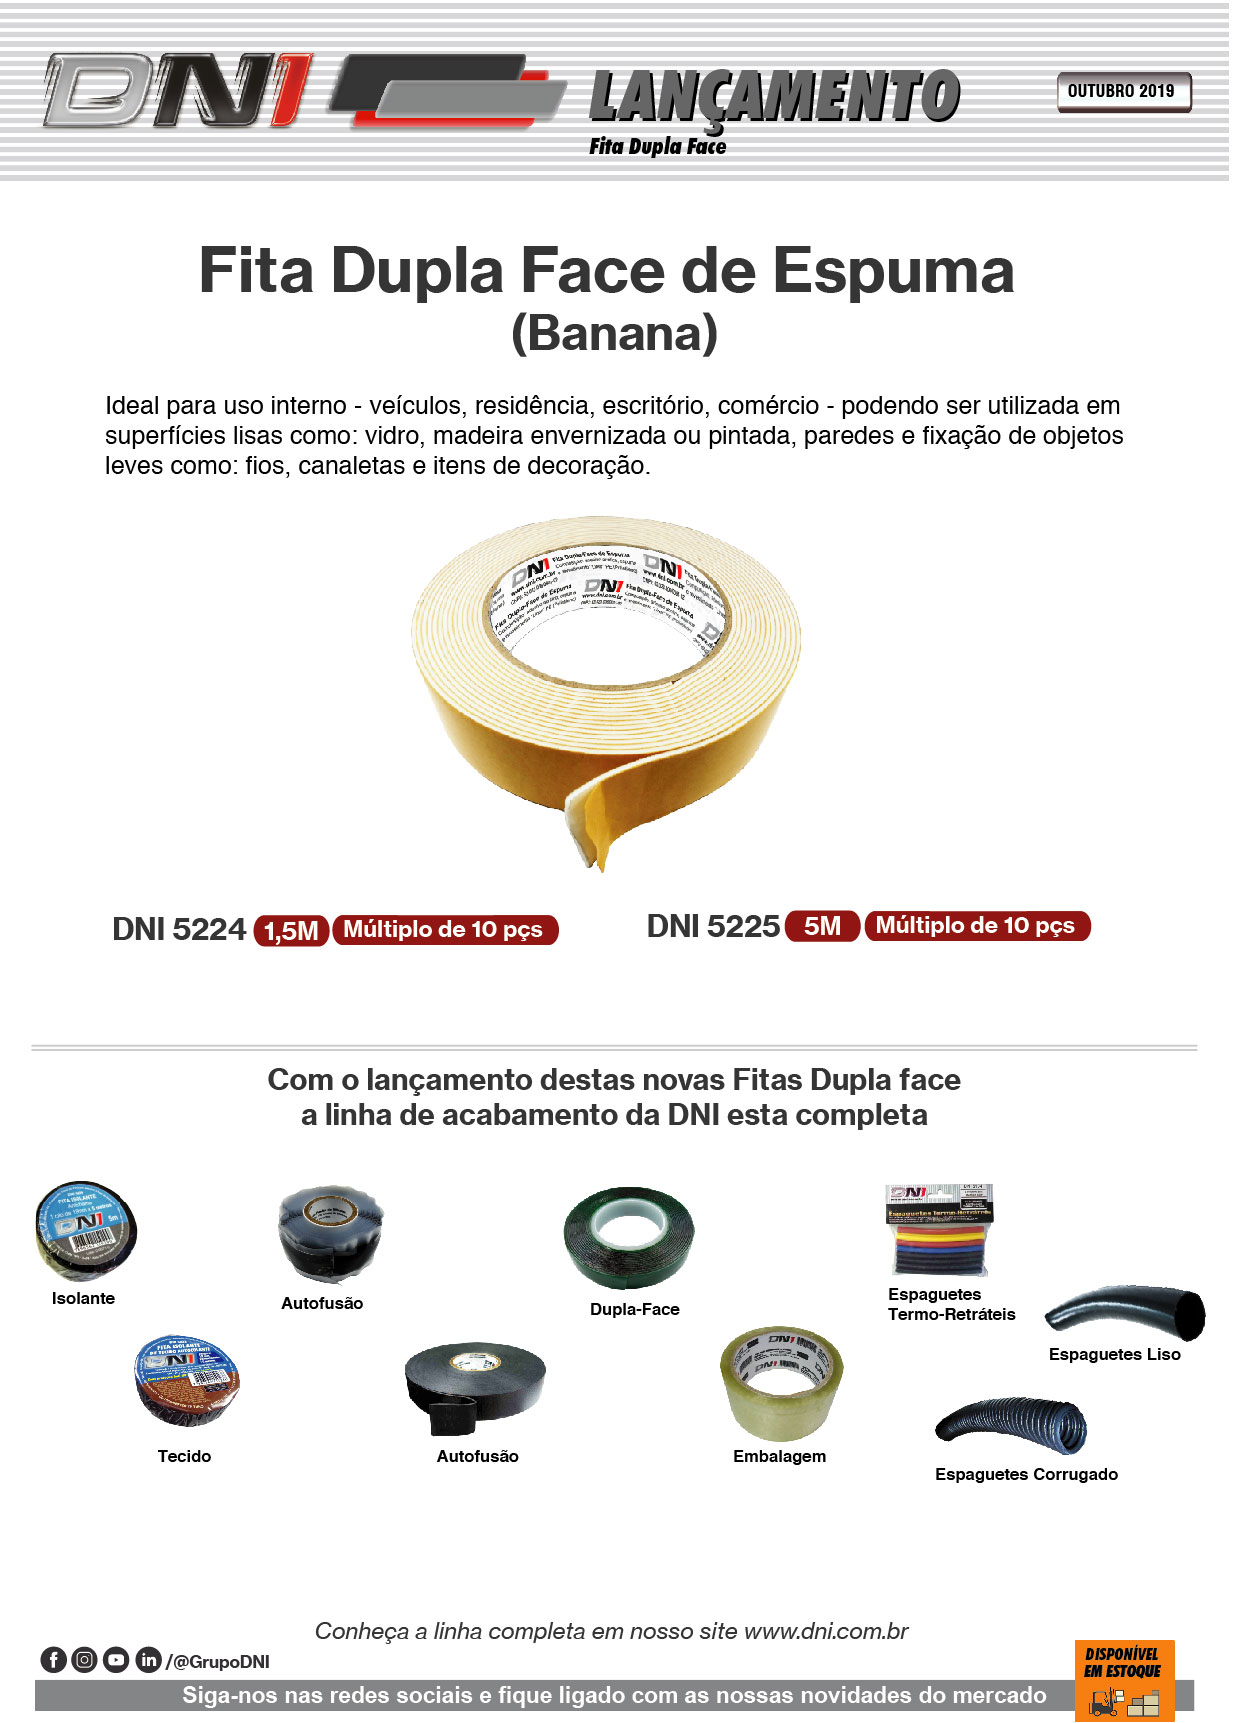 Fita Dupla Face Espuma Banana - OUT/19